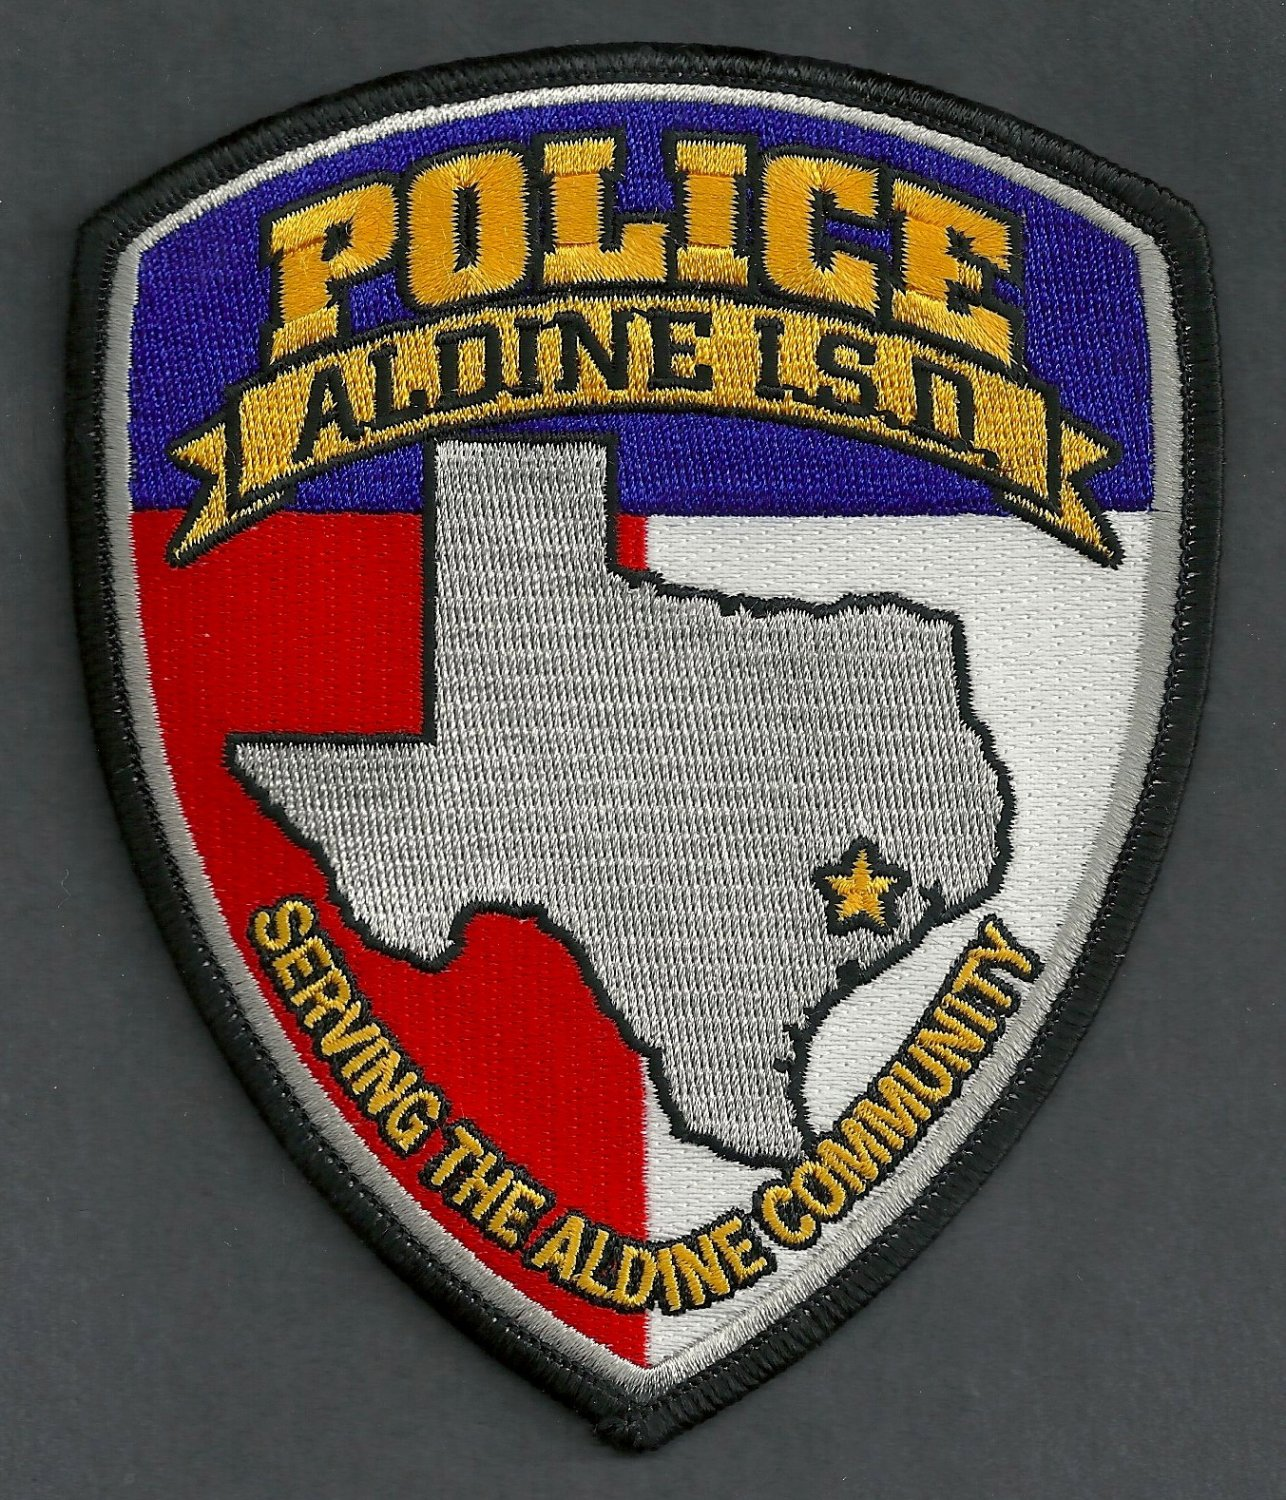 pennsylvania state police helicopter with Aldine Independent School District Texas on Article 936643a4 2ae2 5b8e B343 B9e67f43a34f also 321 additionally Helicopter Crashes With Four On Board In Southern Delaware together with B407gx psp6 besides Starflight Celebrates 25 Years.